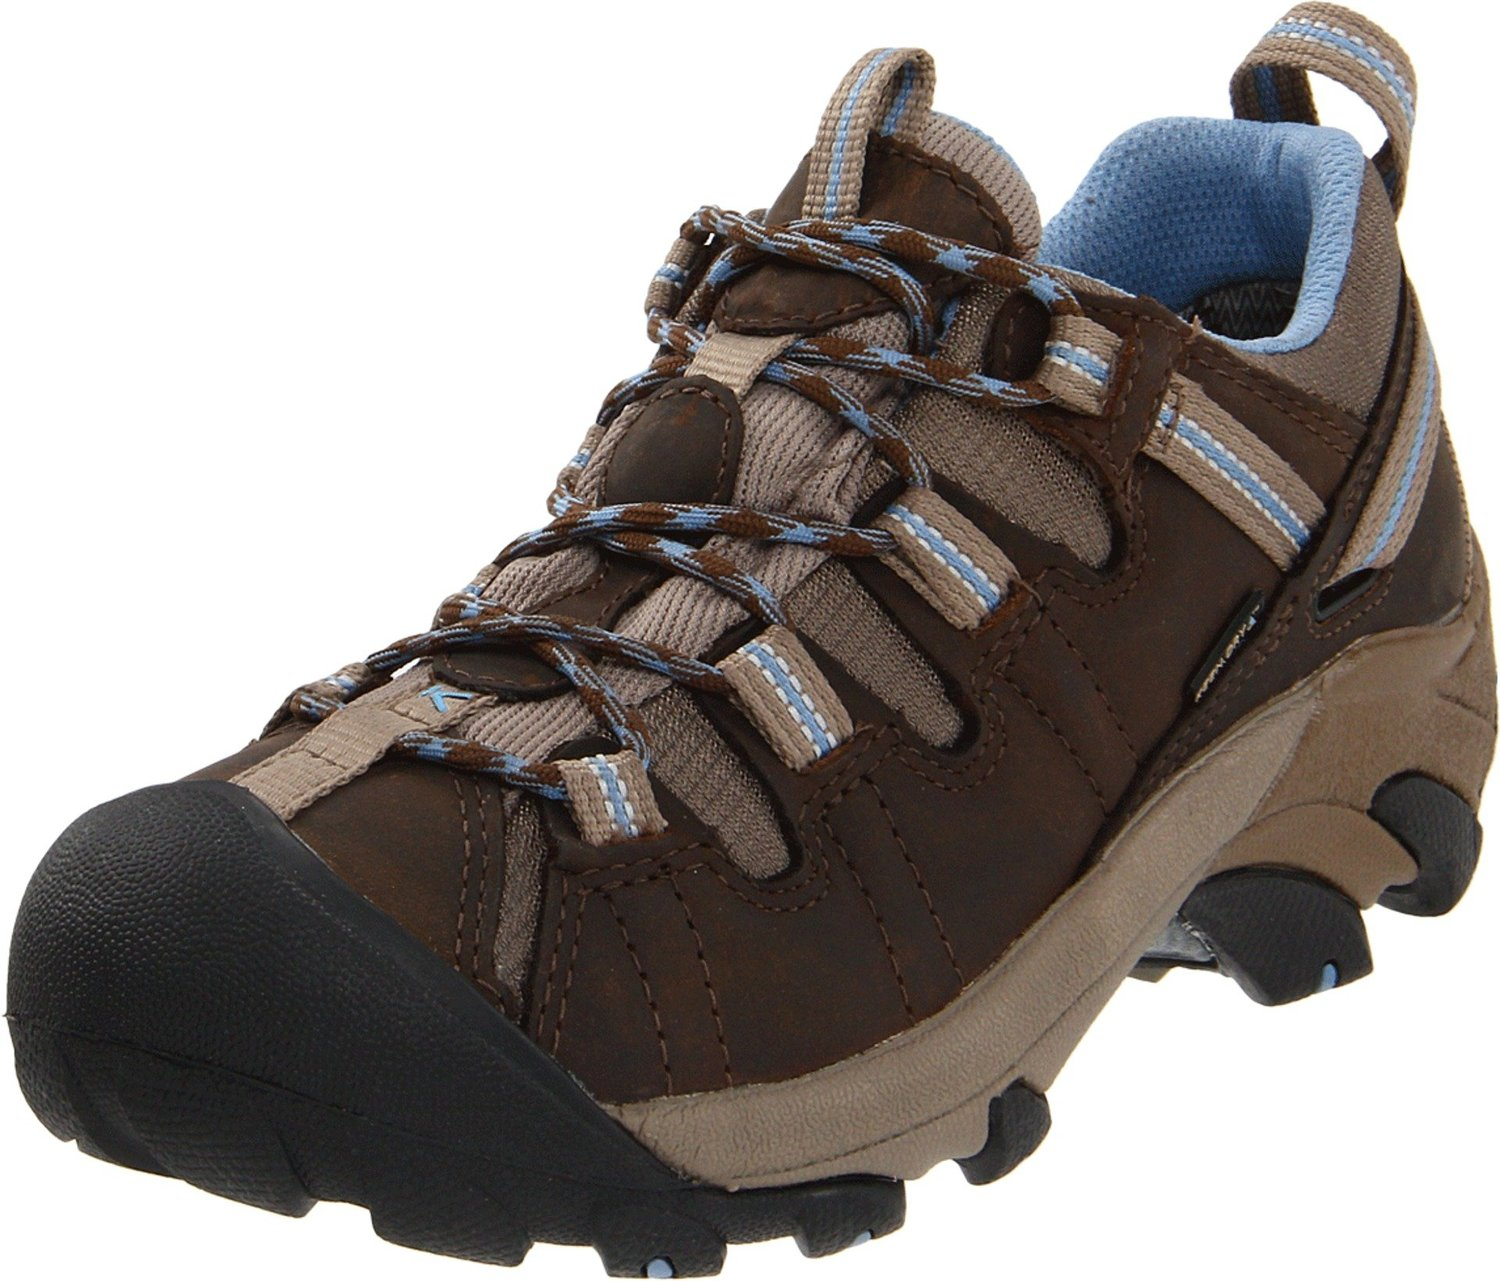 KEEN Womens Targhee II Hiking Shoe - Brown - Size 7